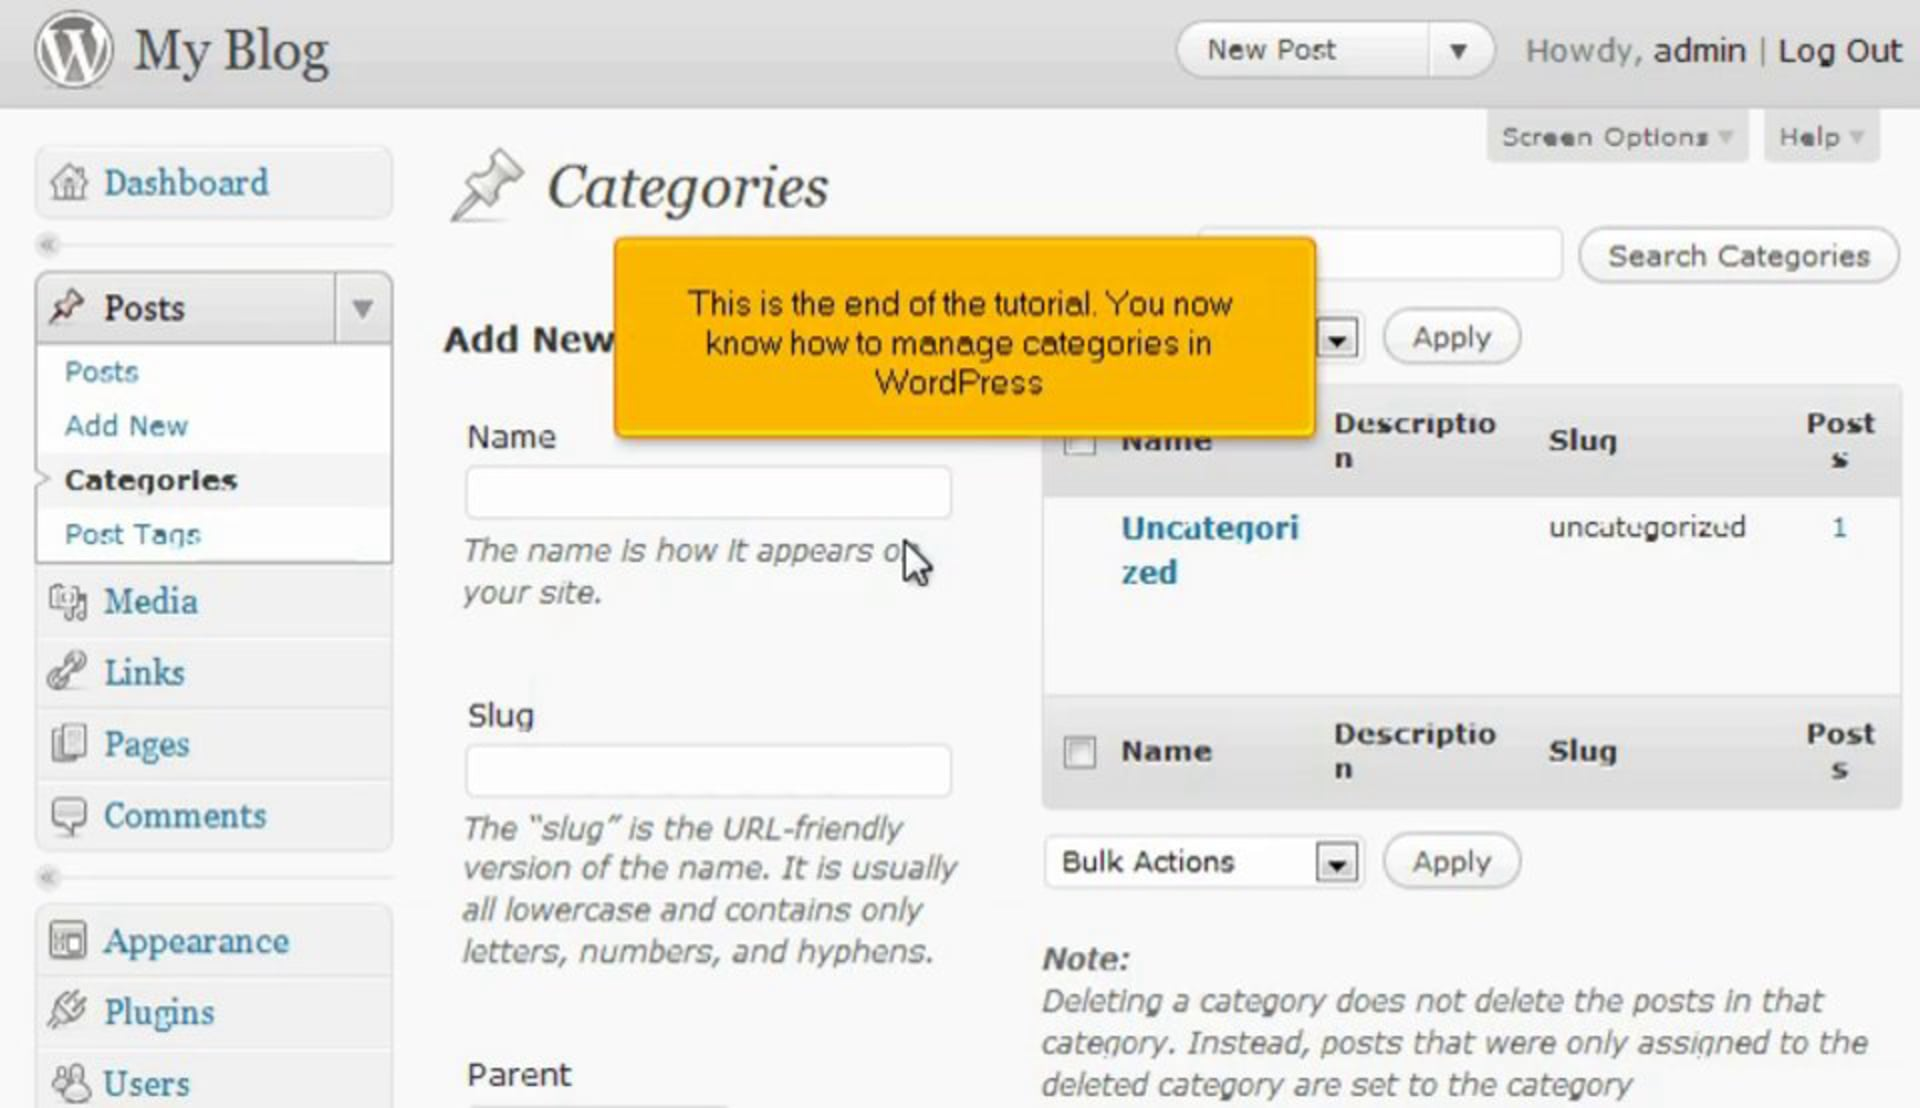 how-to-manage-categories-in-wordpress.jpg